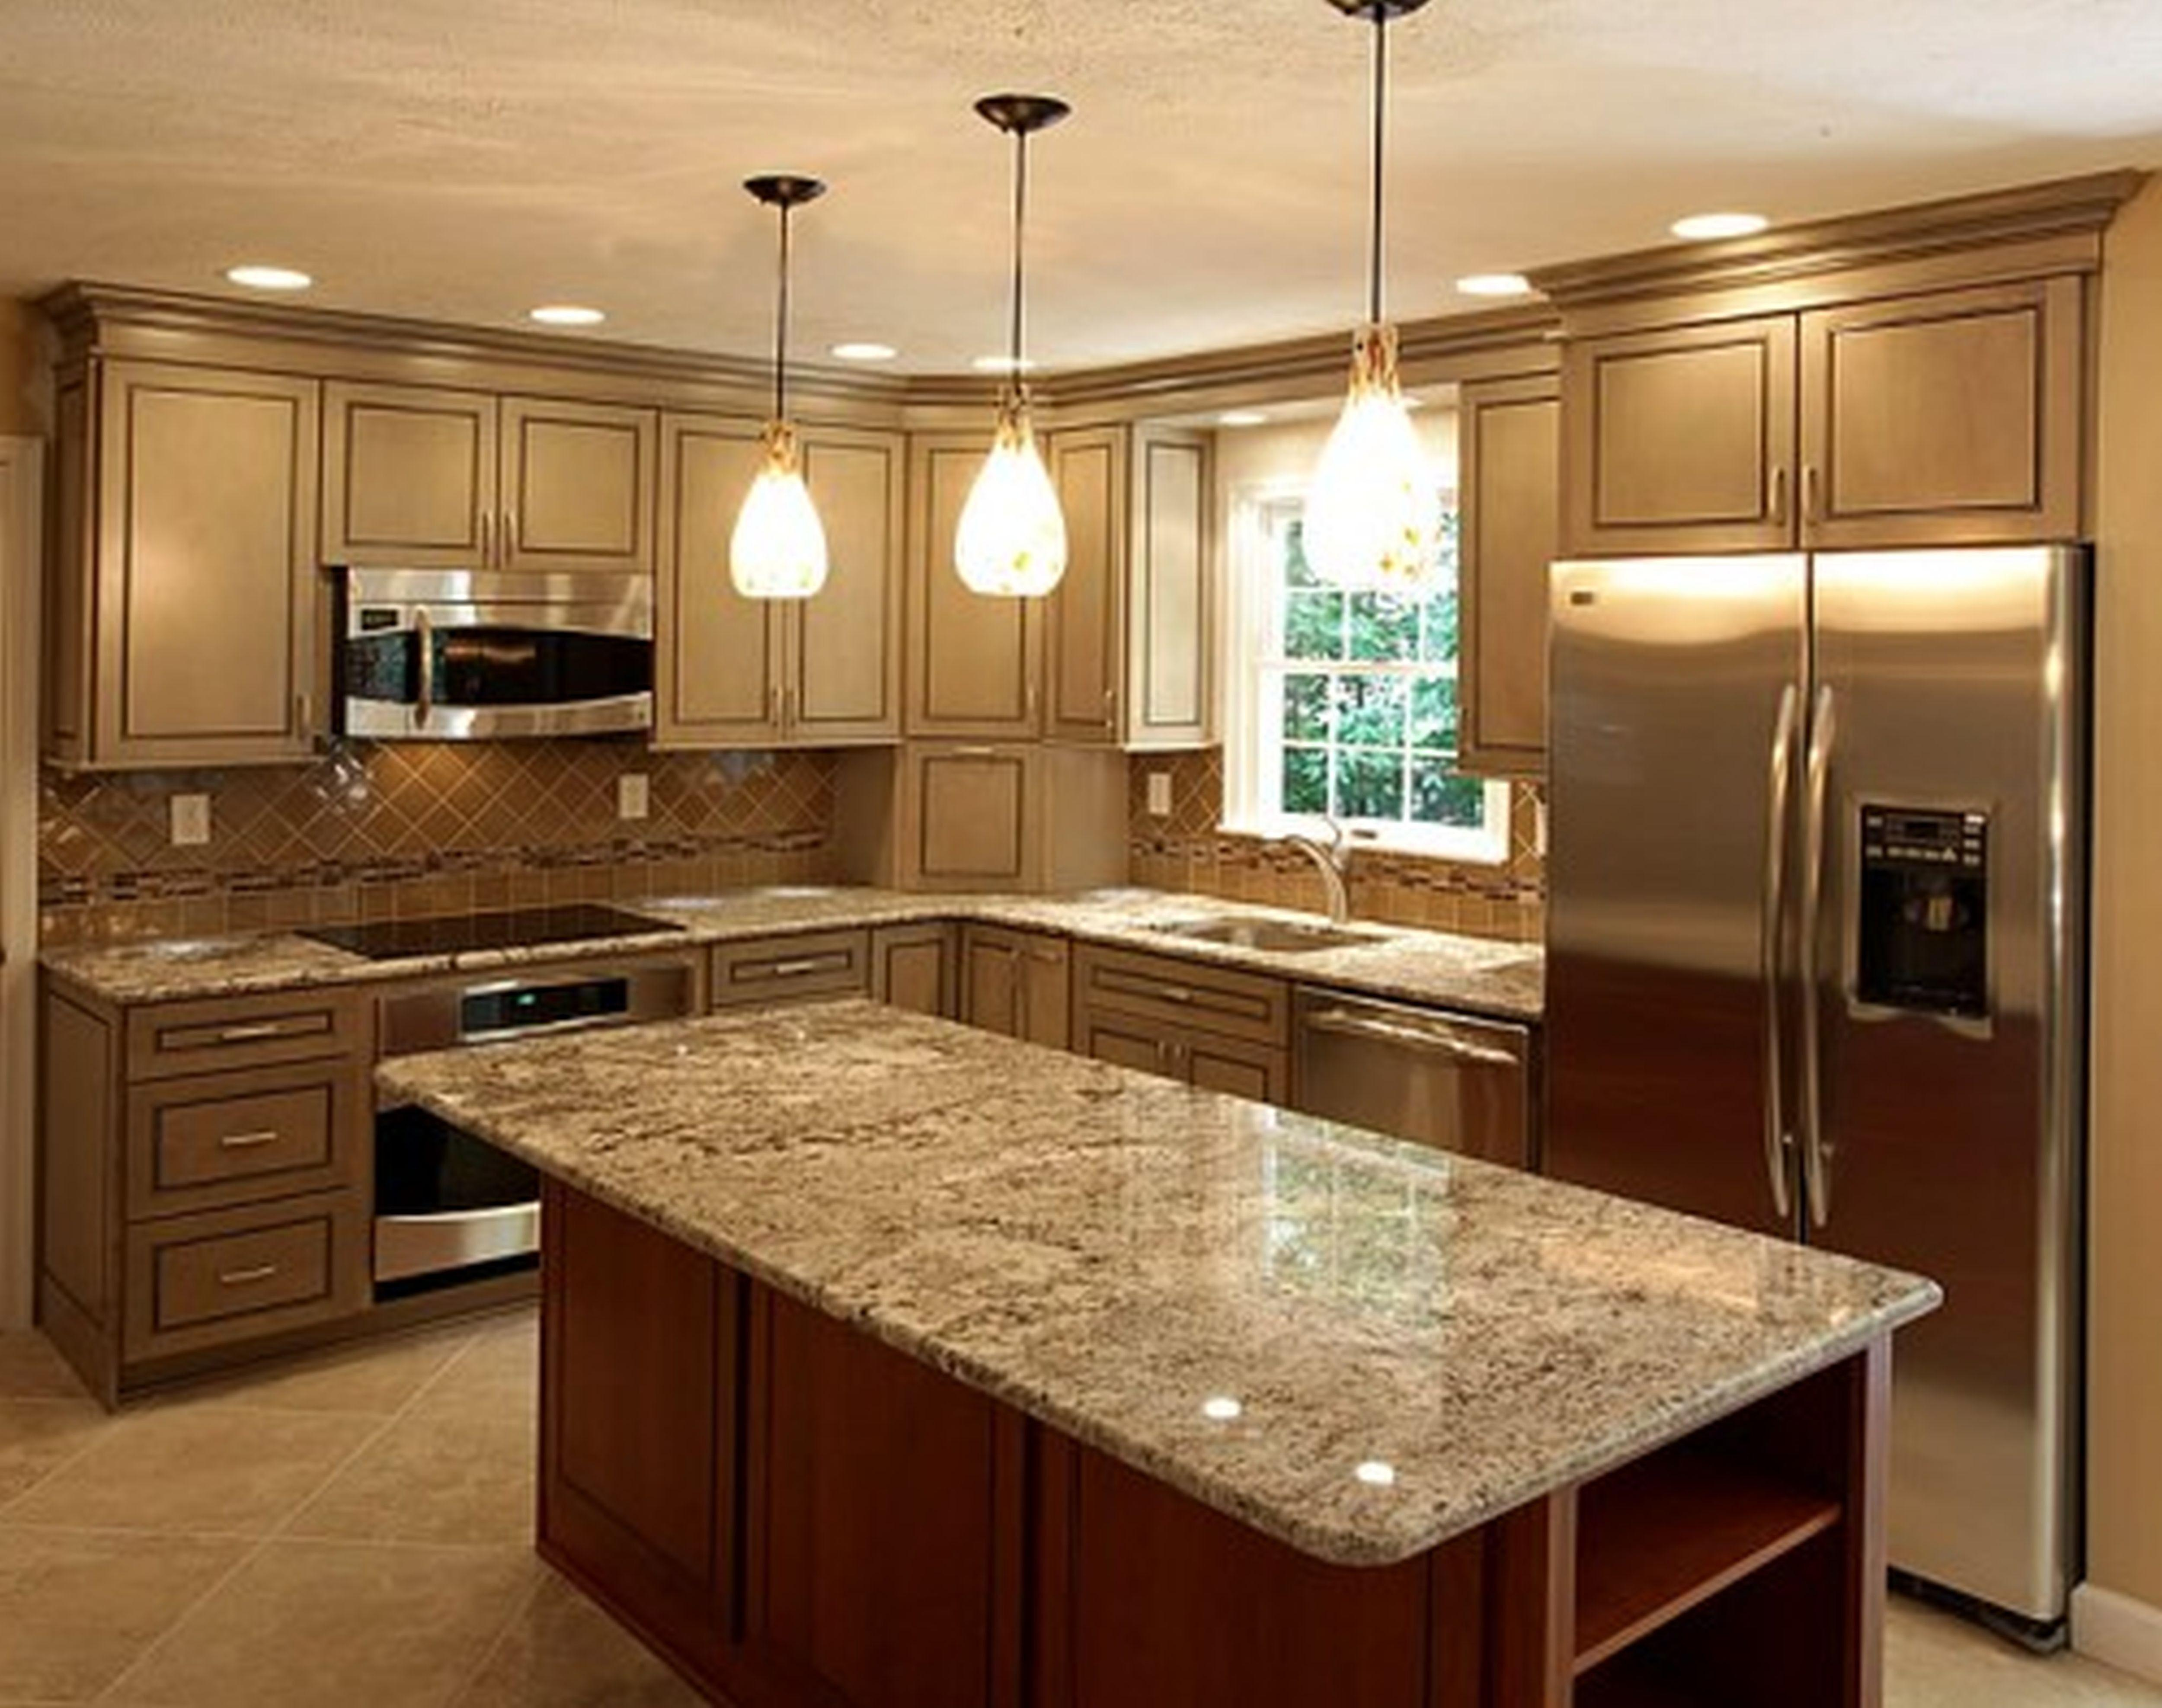 Unforgettable Kitchen Ideas Small Homes Apartments